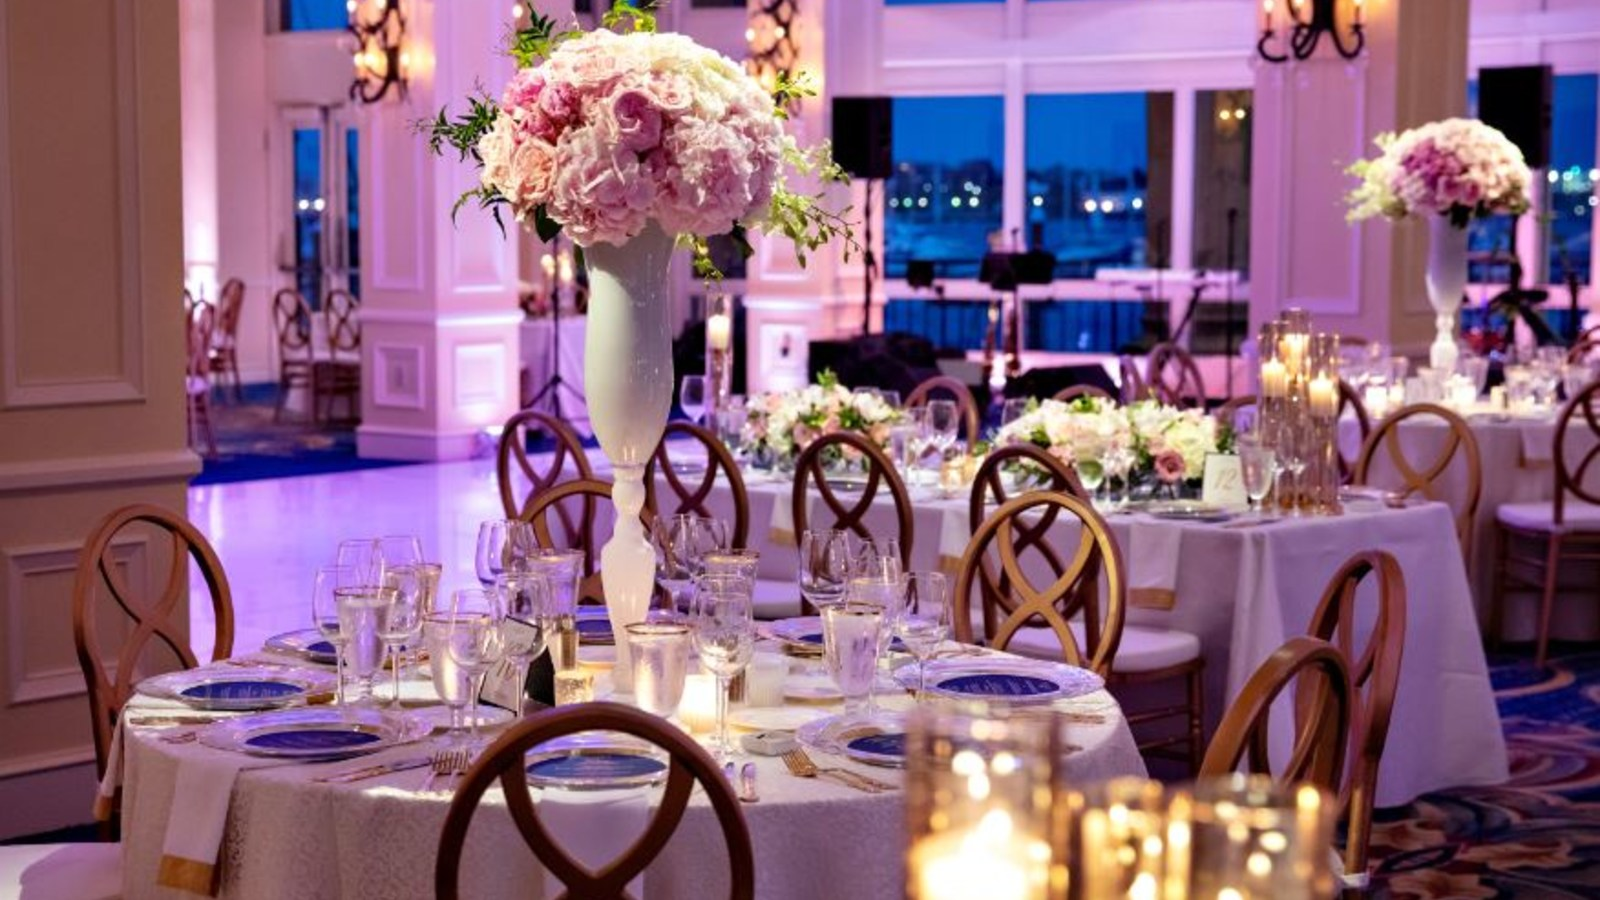 Tables set for wedding reception